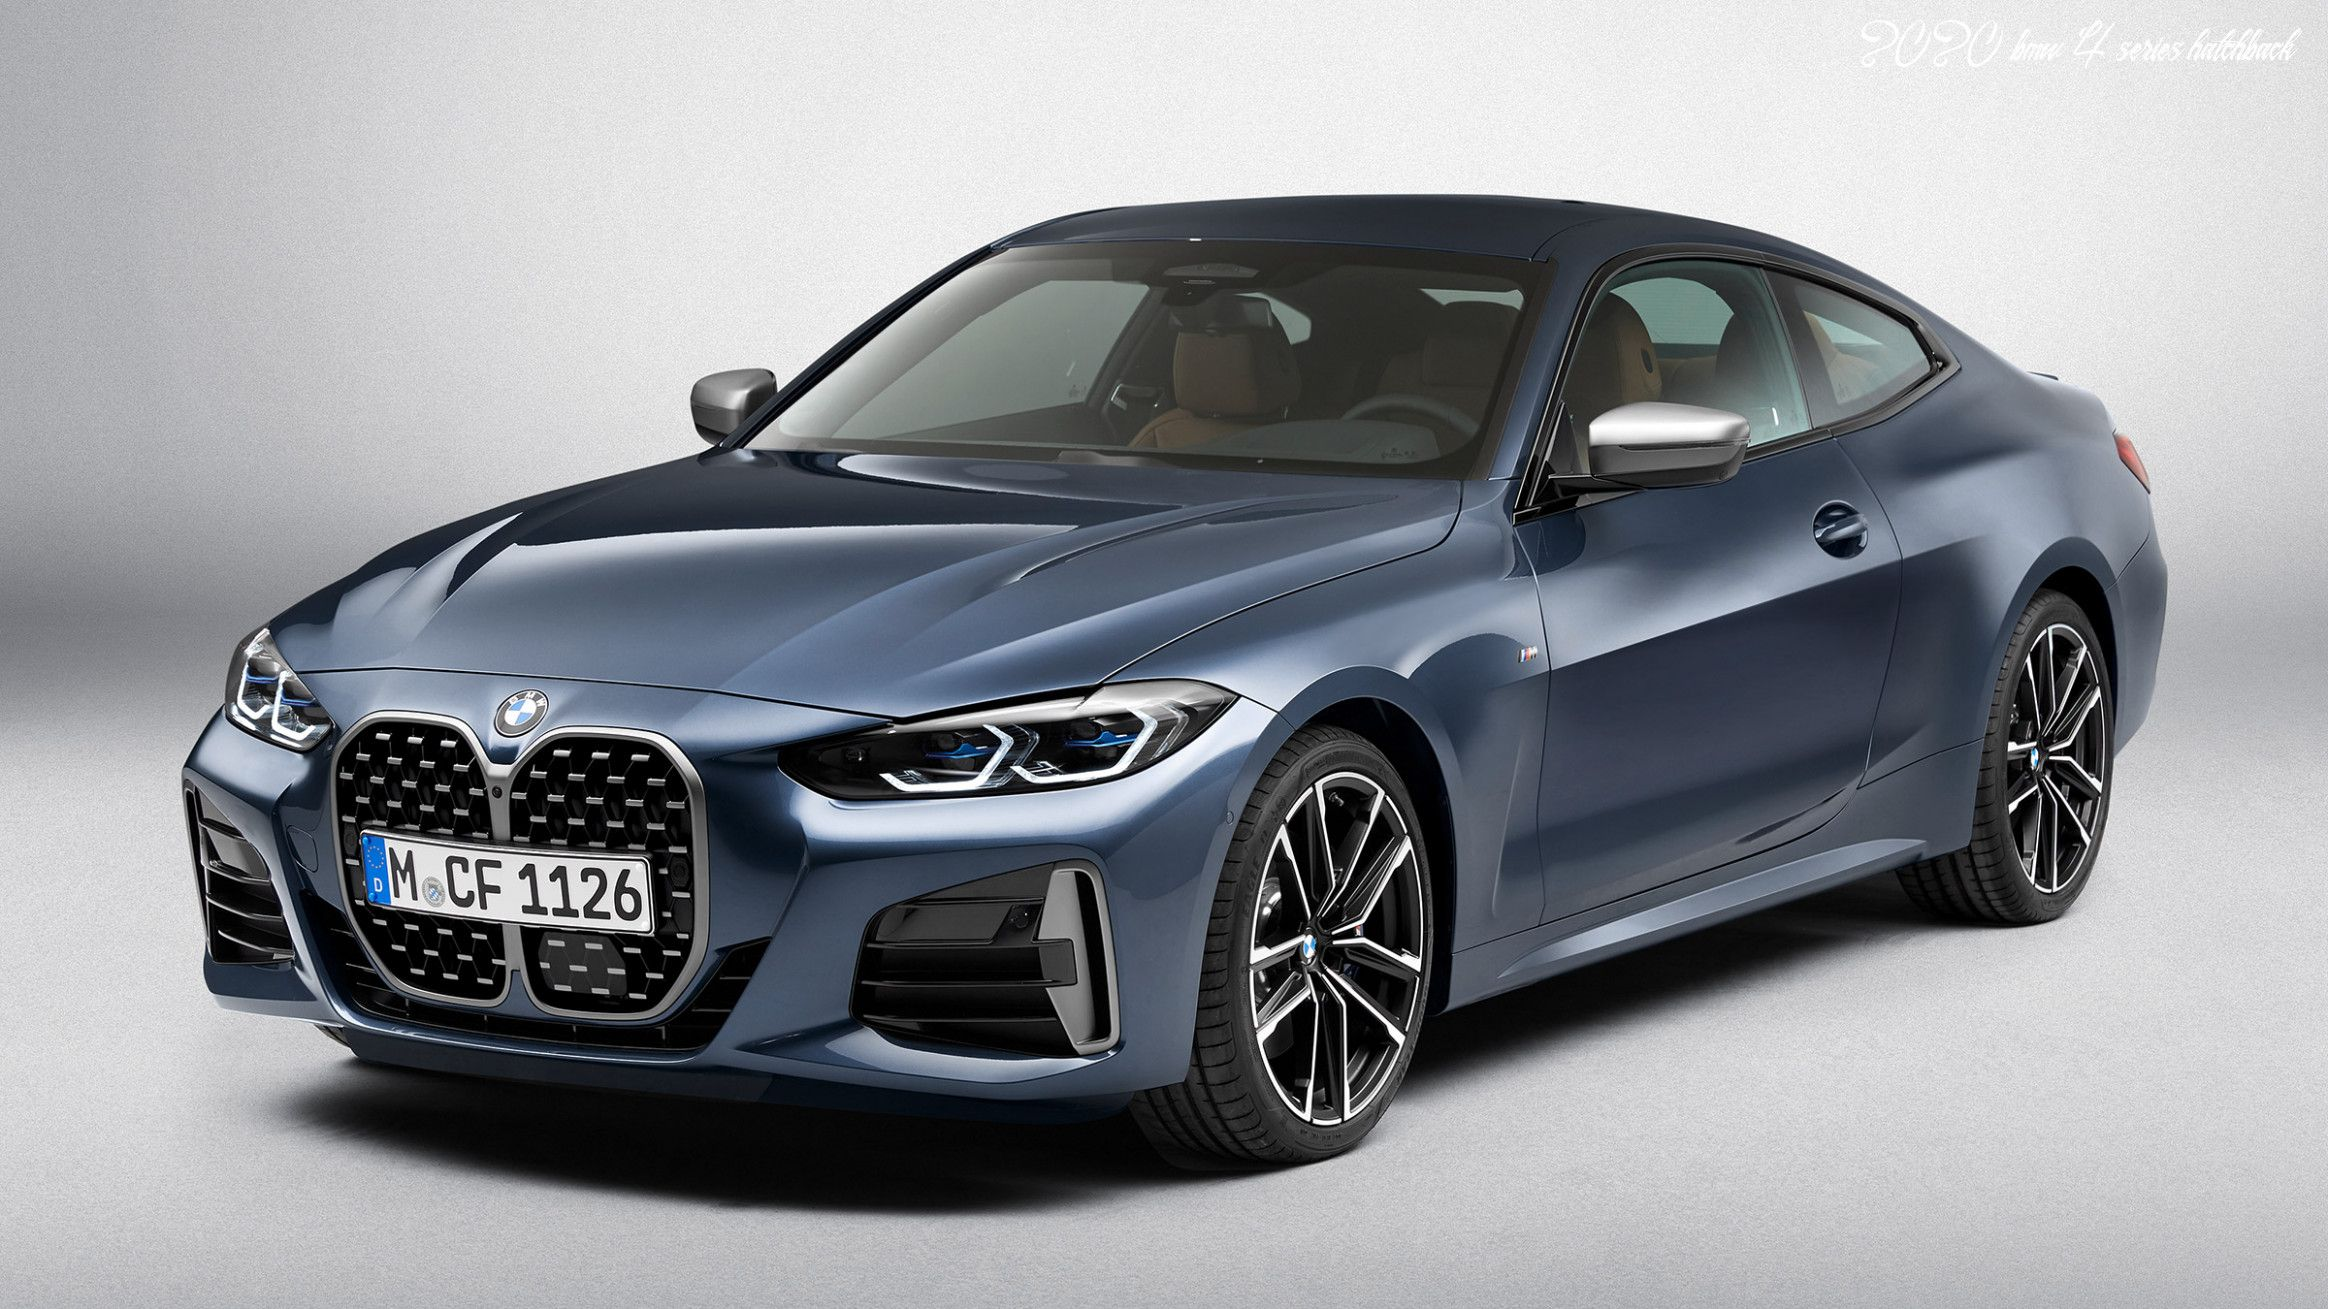 2020 Bmw 4 Series Hatchback Redesign And Concept Em 2020 Veiculos